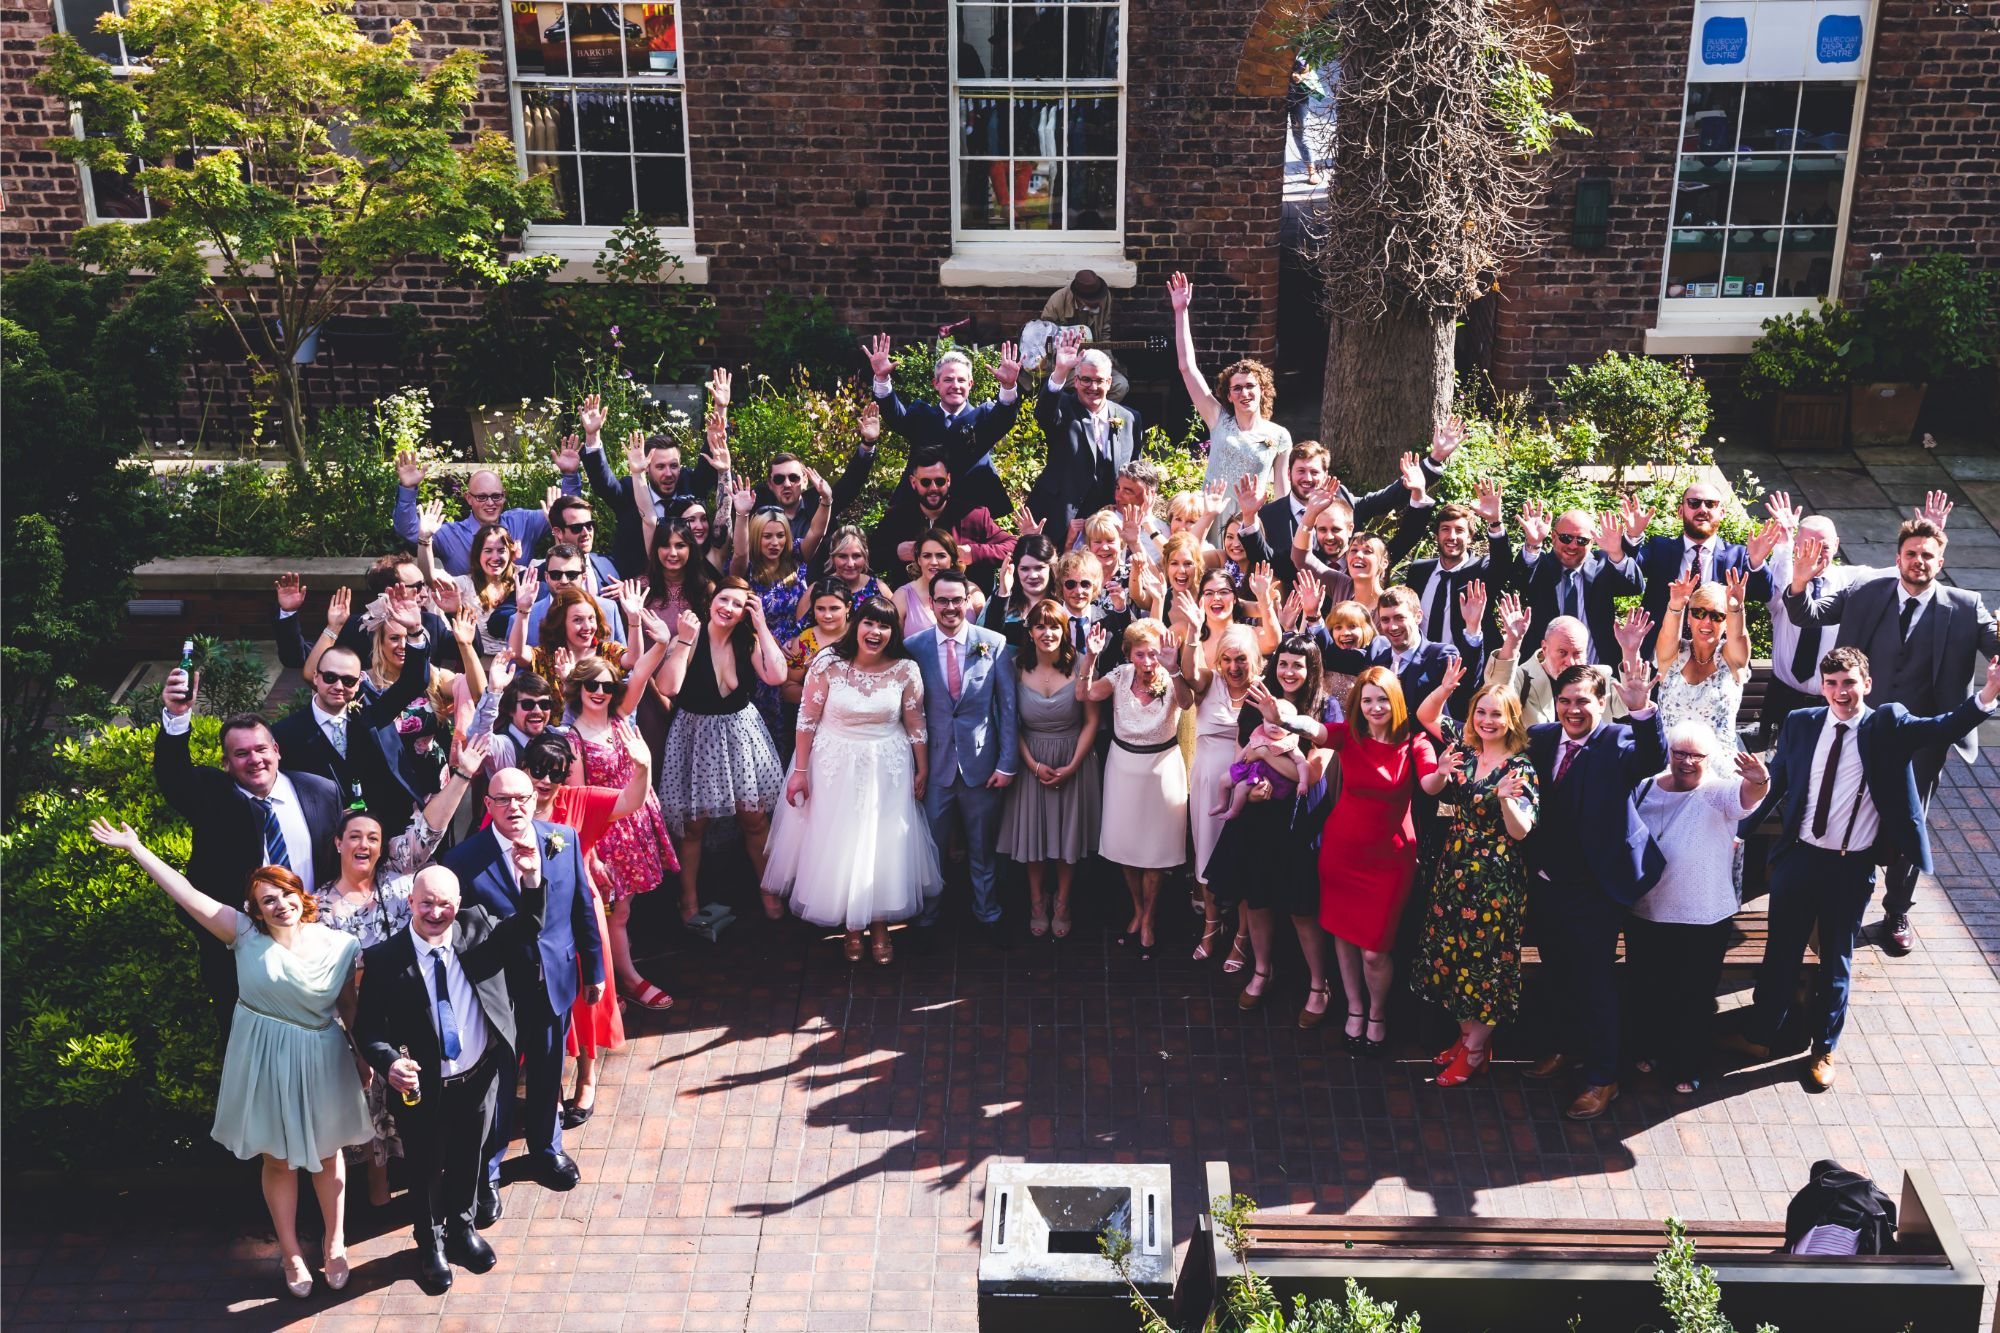 Wedding party in The Courtyard of Bluecoat Liverpool